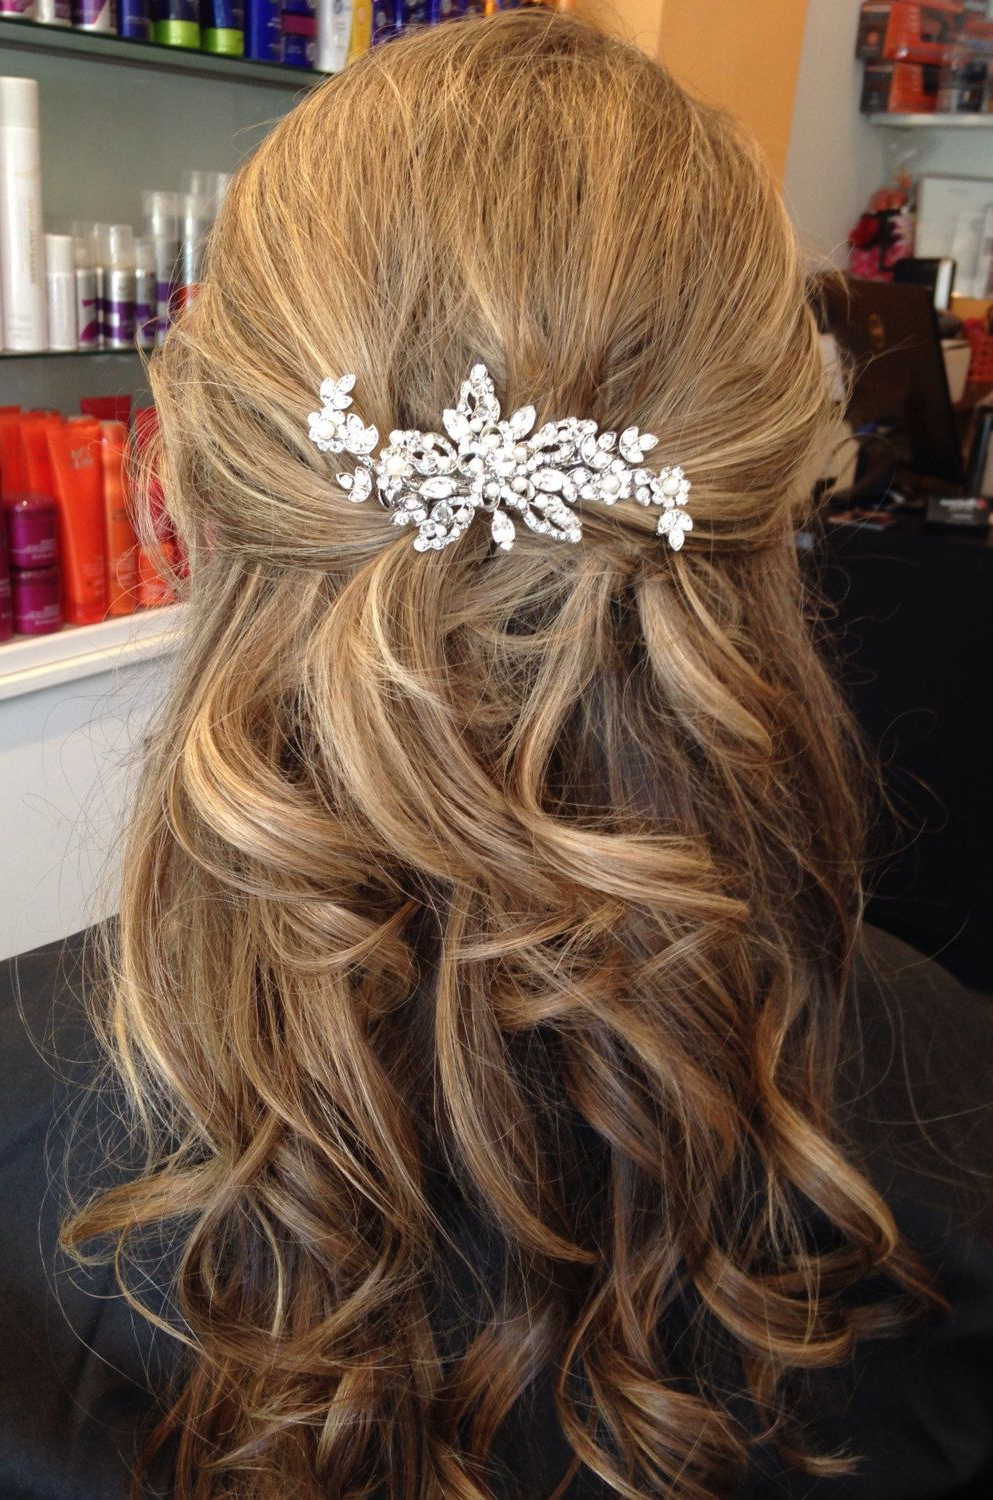 Preferred Pulled Back Half Updo Bridal Hairstyles With Comb Within Vintage Inspired Bridal Hair Accessories Rhinestone Wedding Hair (View 11 of 20)